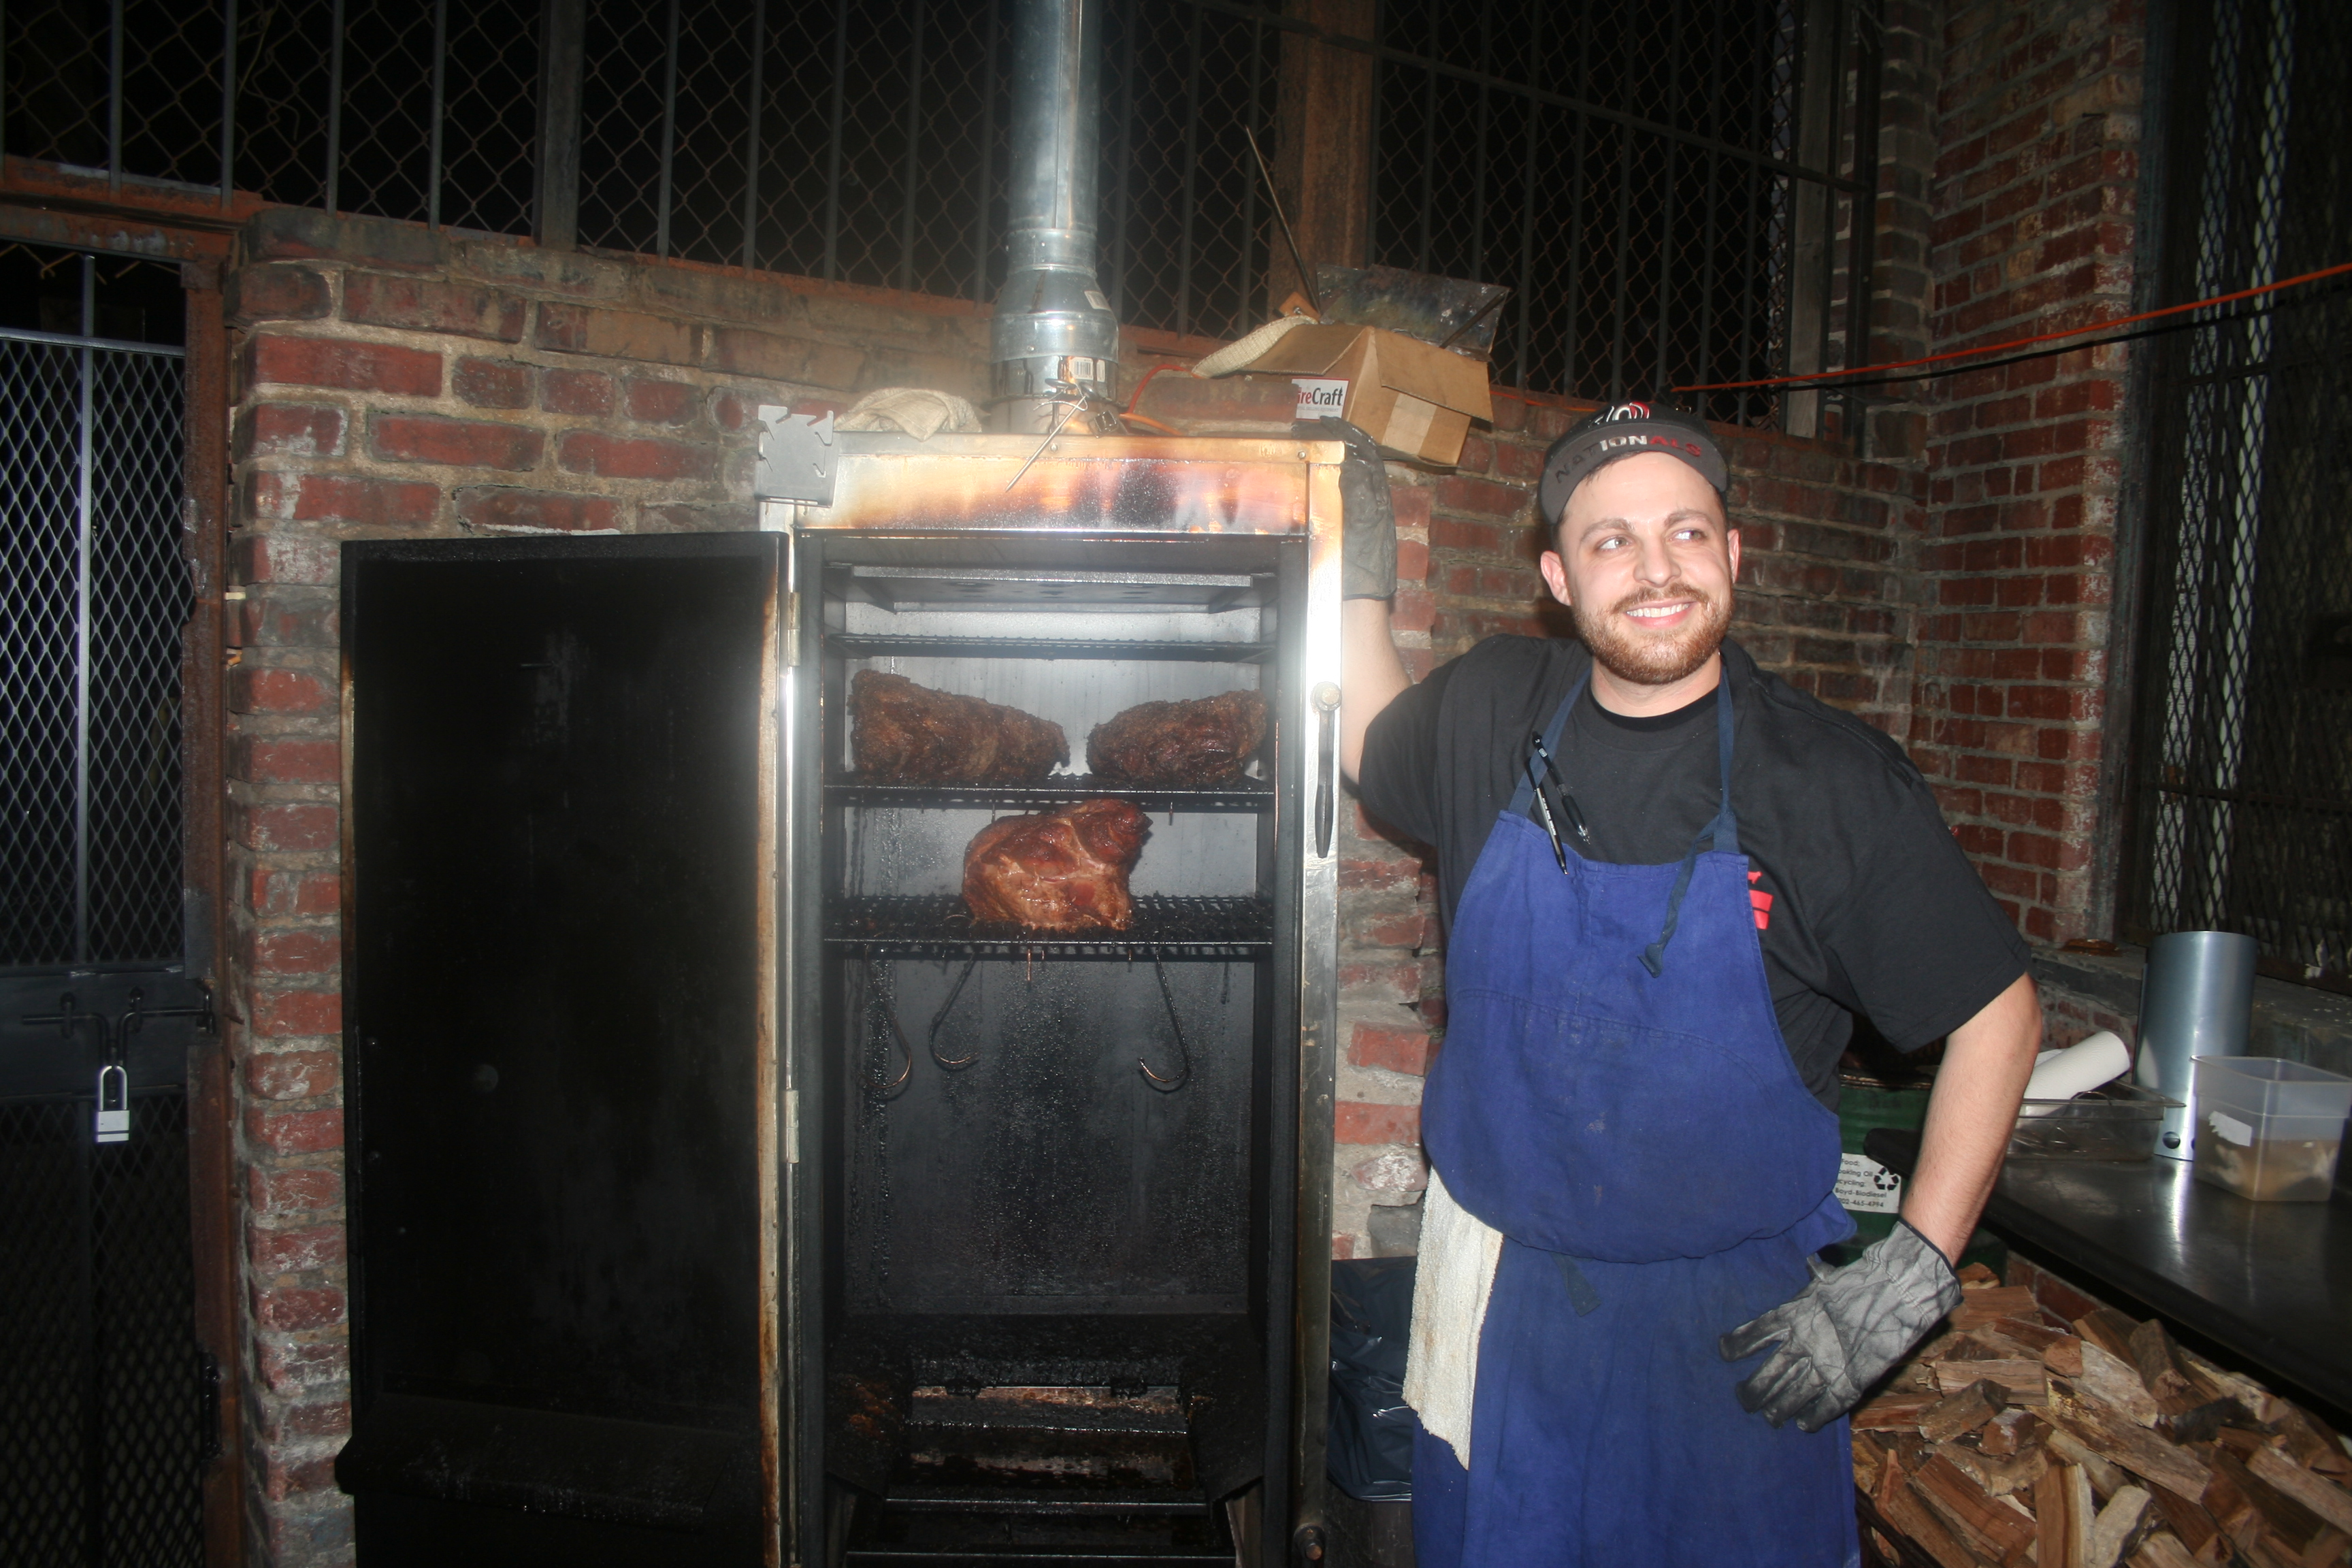 Pitmaster Rob Souderman at the DCity Smokehouse smoker. (Photo: Mark Heckathorn/DC on Heels)